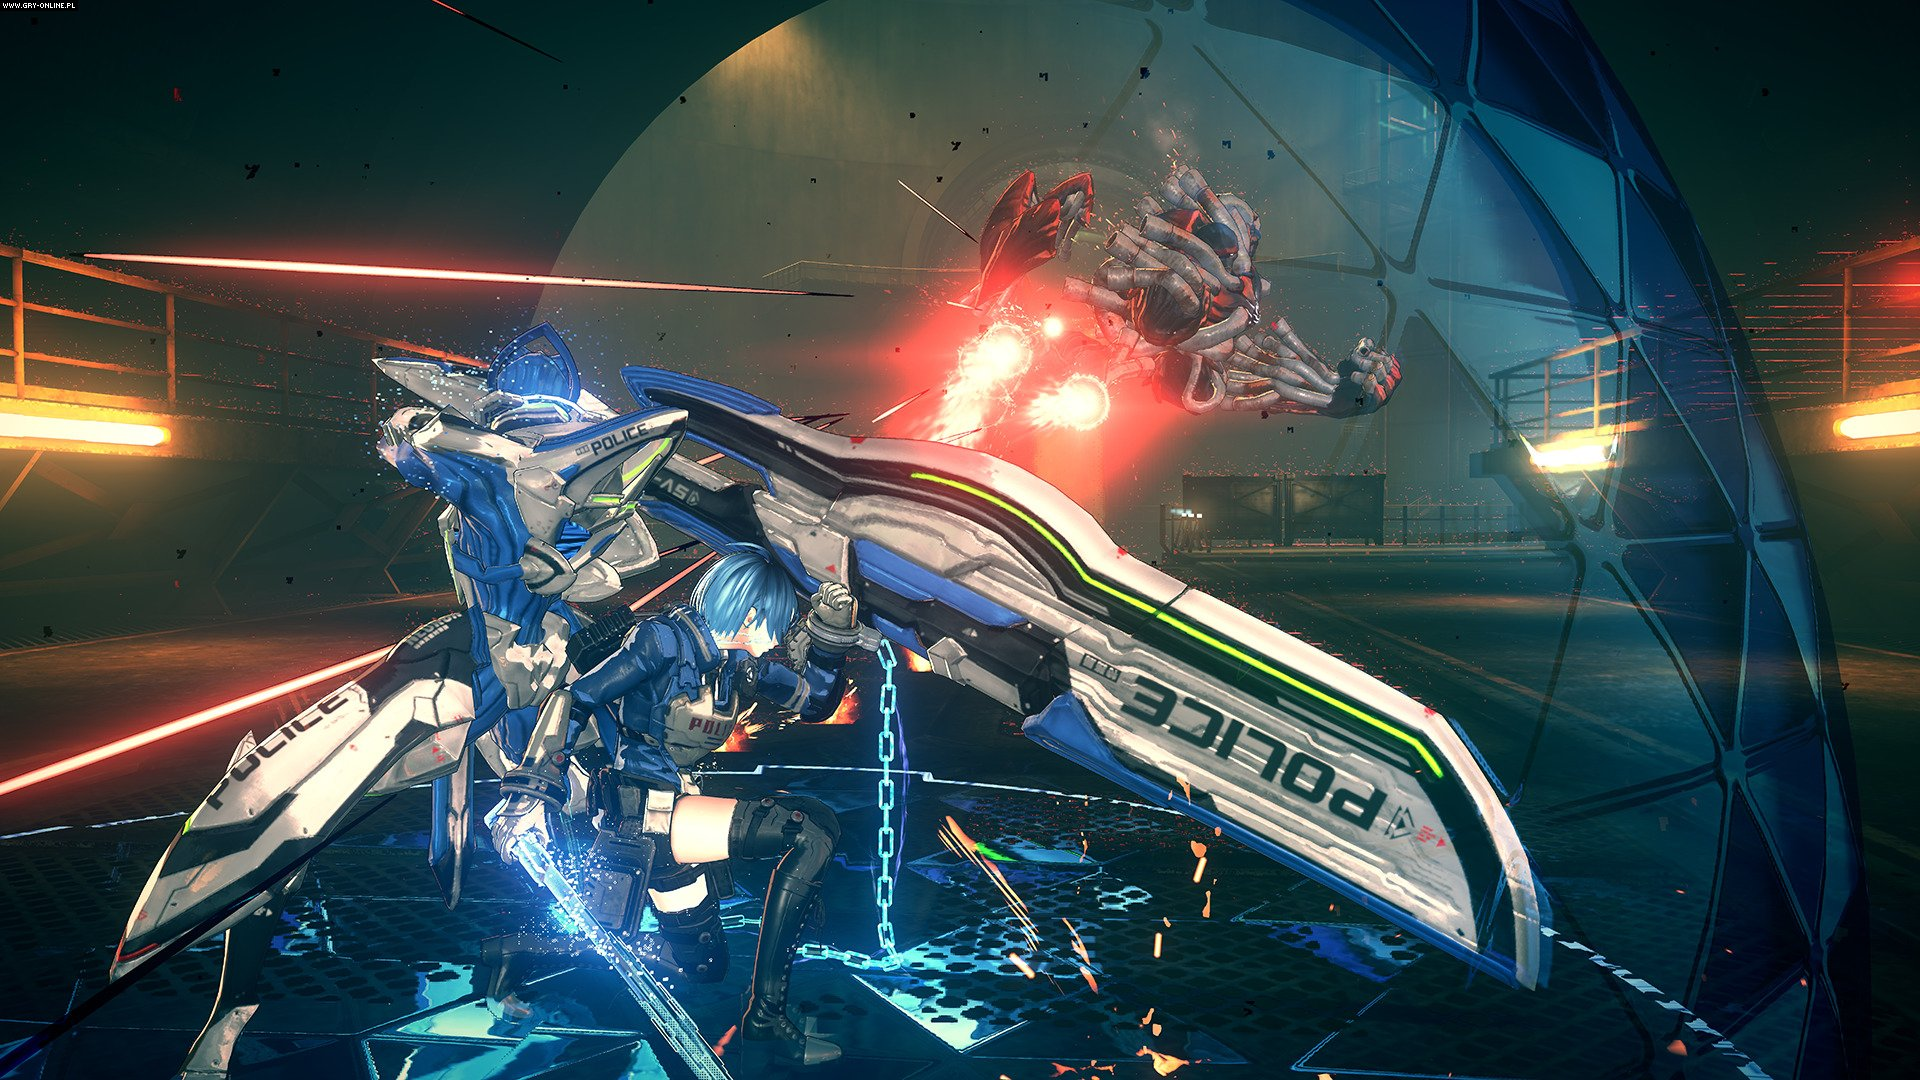 Astral Chain Switch Games Image 14/55, PlatinumGames, Nintendo